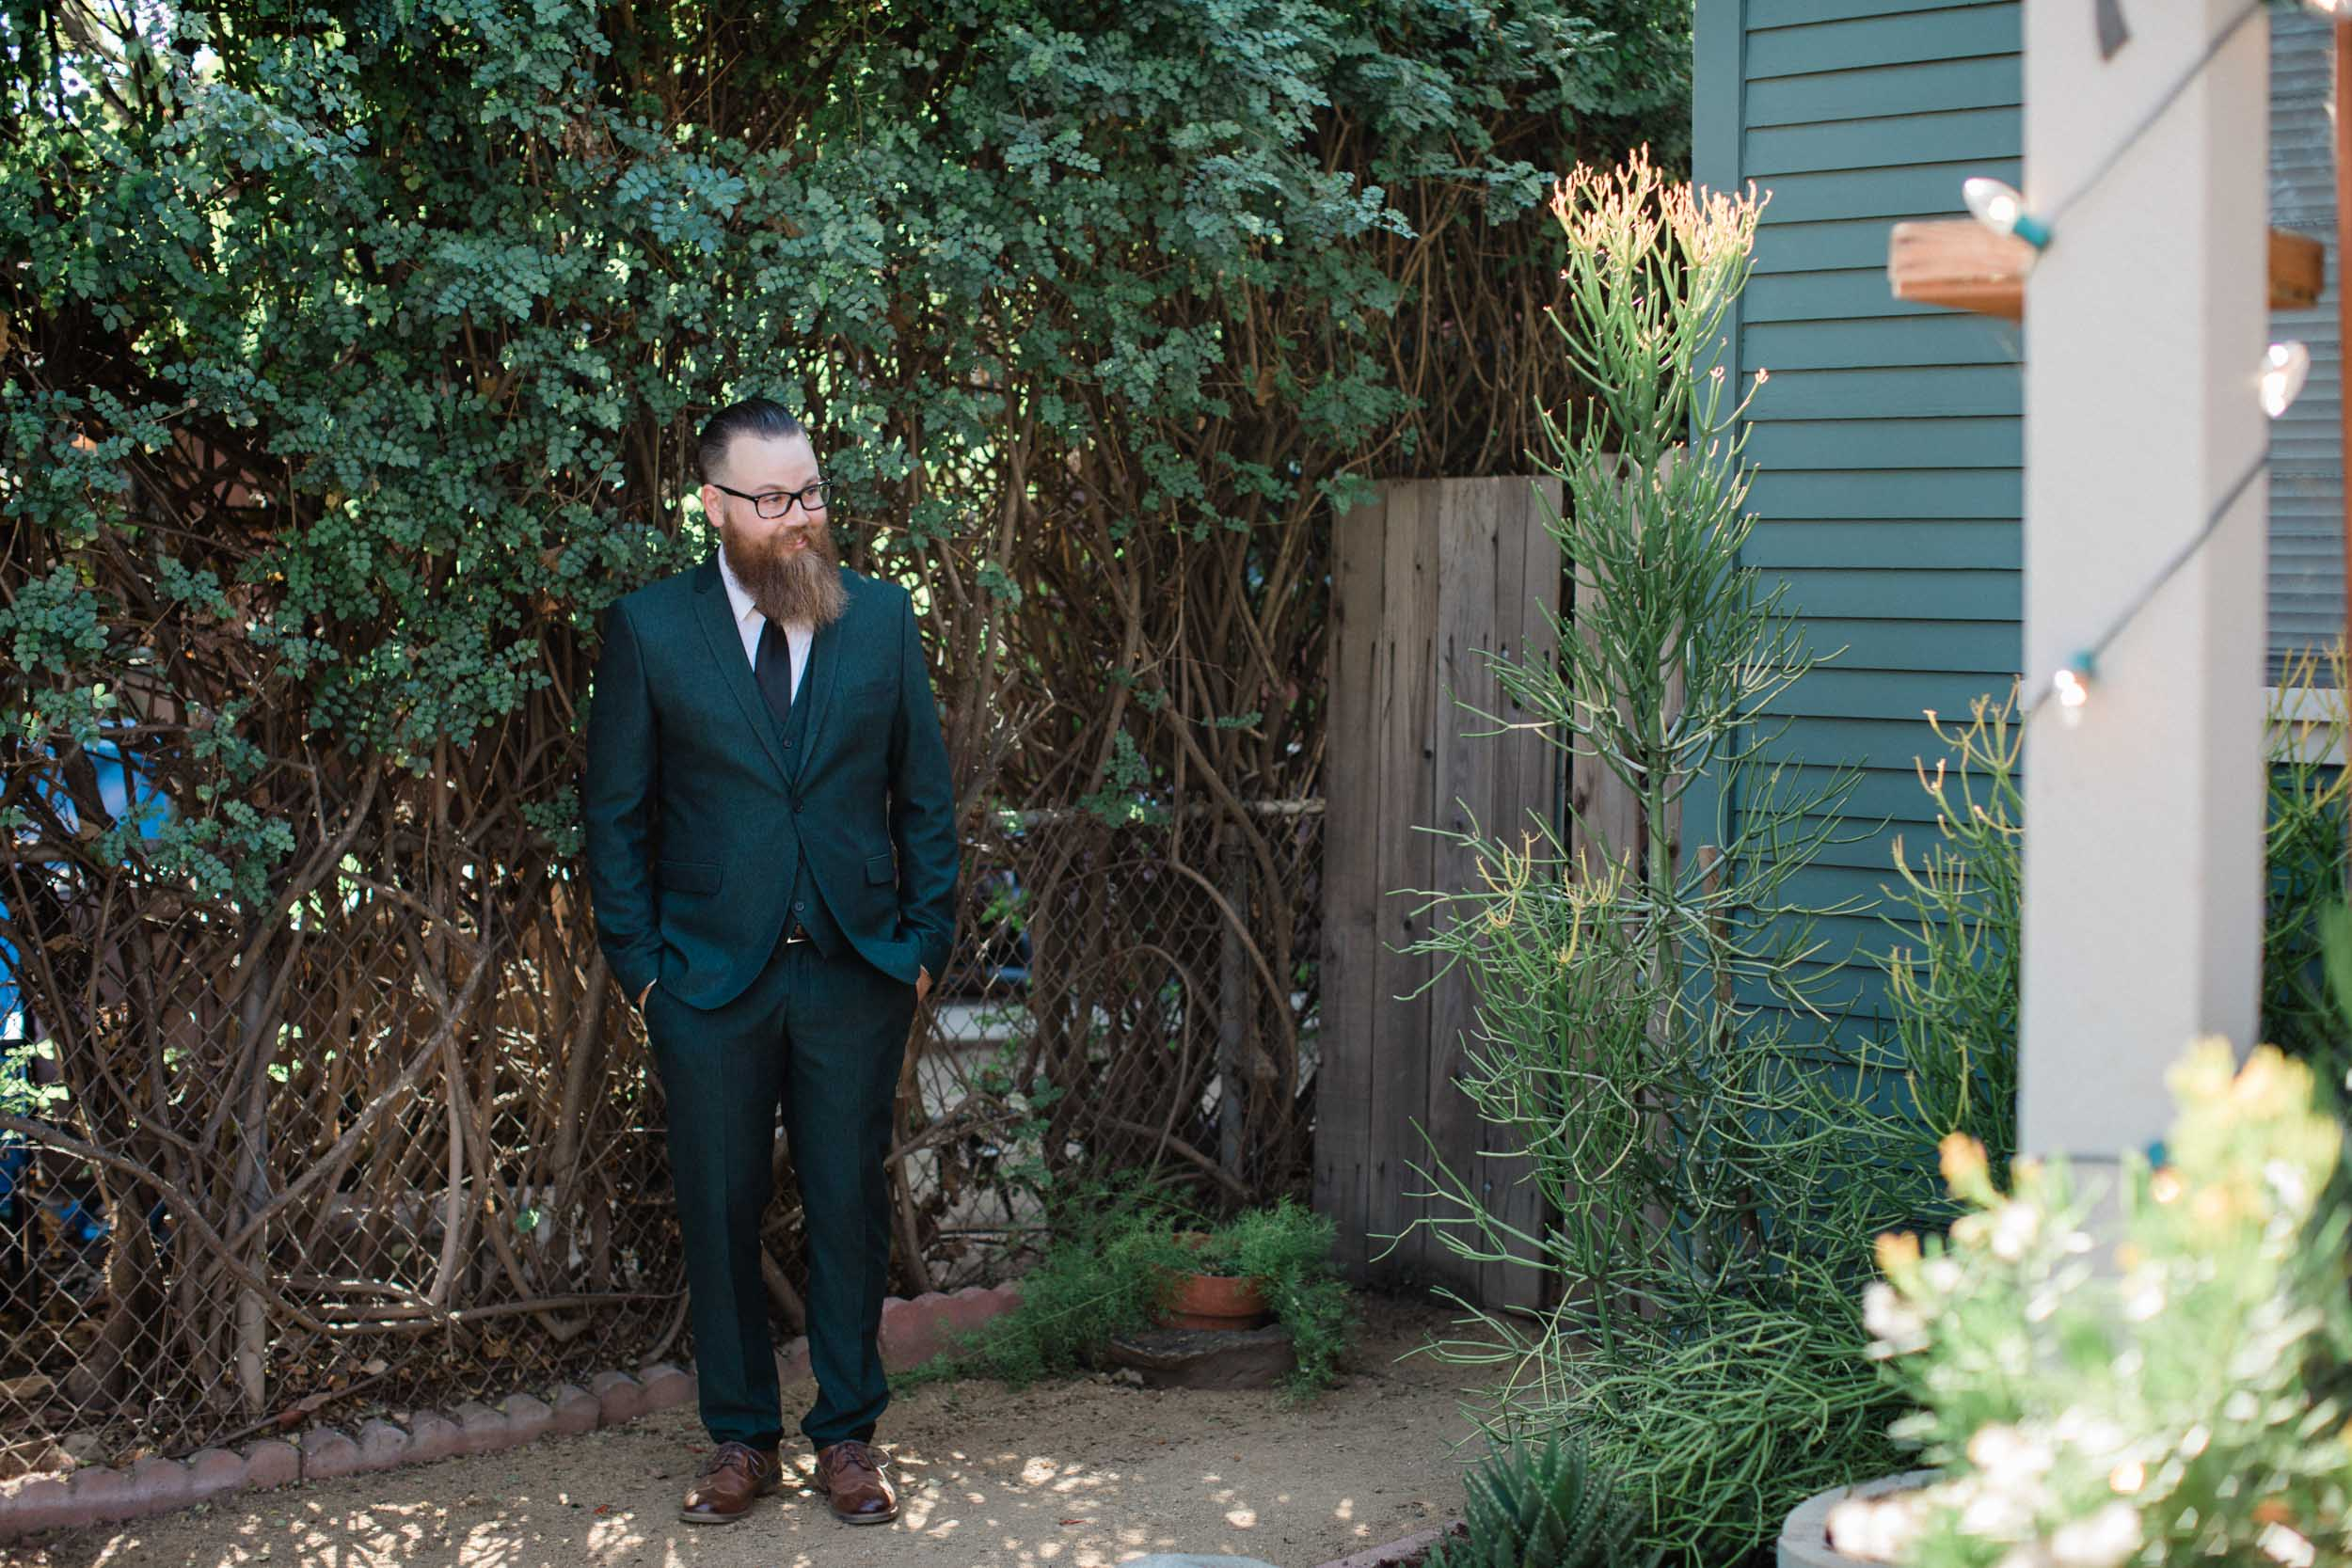 BKM-Photography-Highland-Park-Los-Angeles-Backyard-DIY-Wedding-0049.jpg